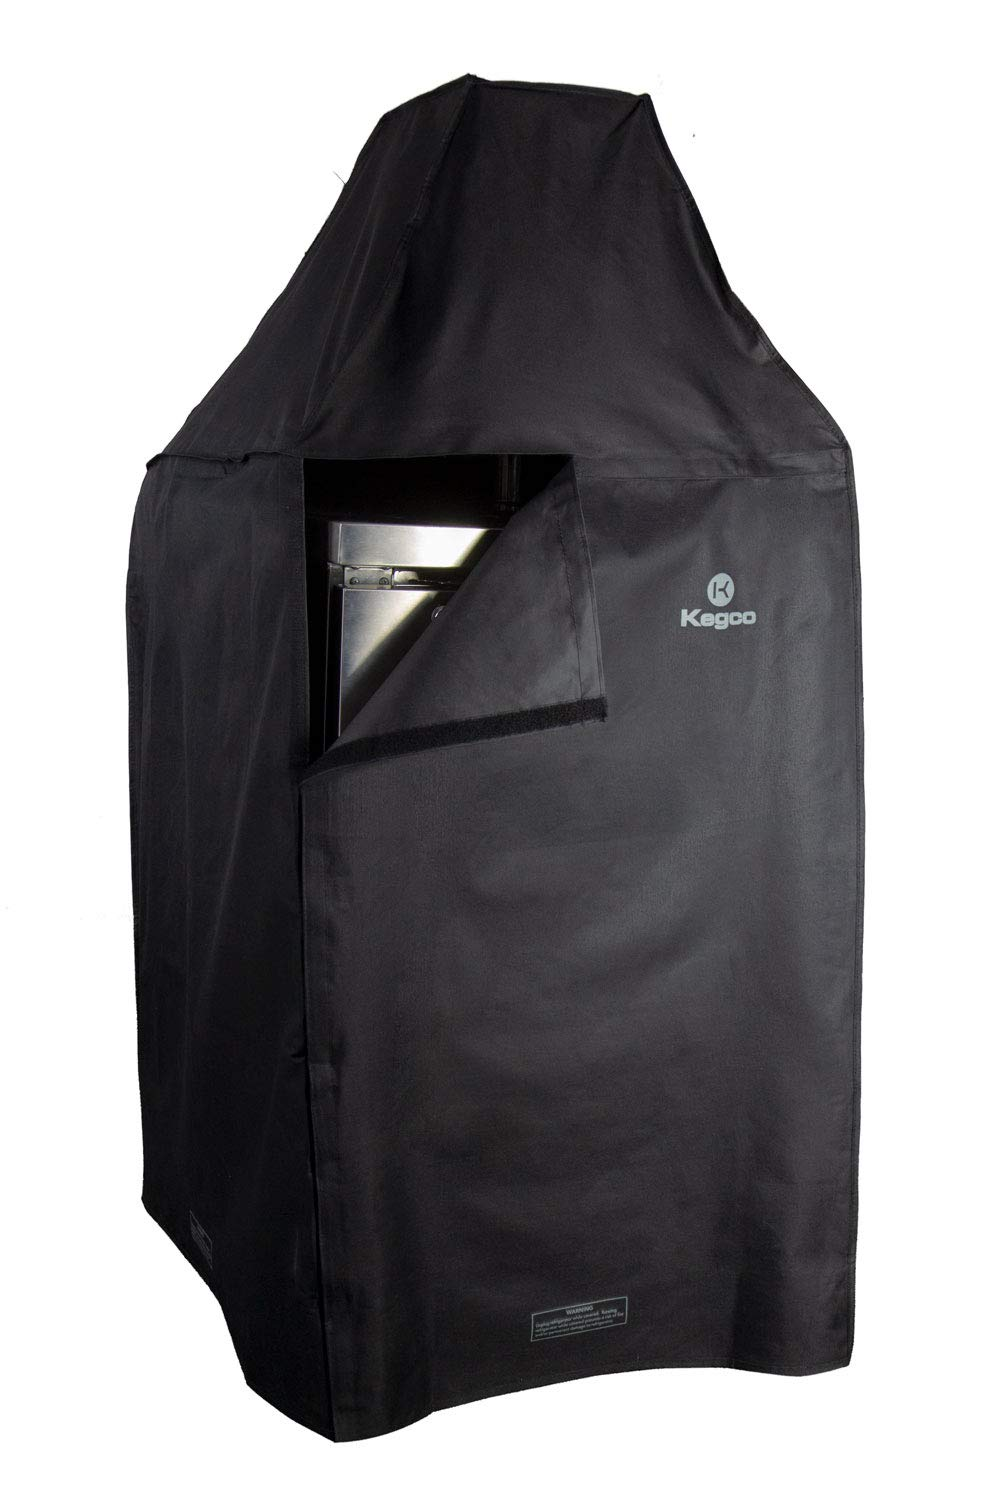 Kegco TX-KCVDP-39L EZ-On Commercial Kegerator Cover with Velcro Lined Door Panel